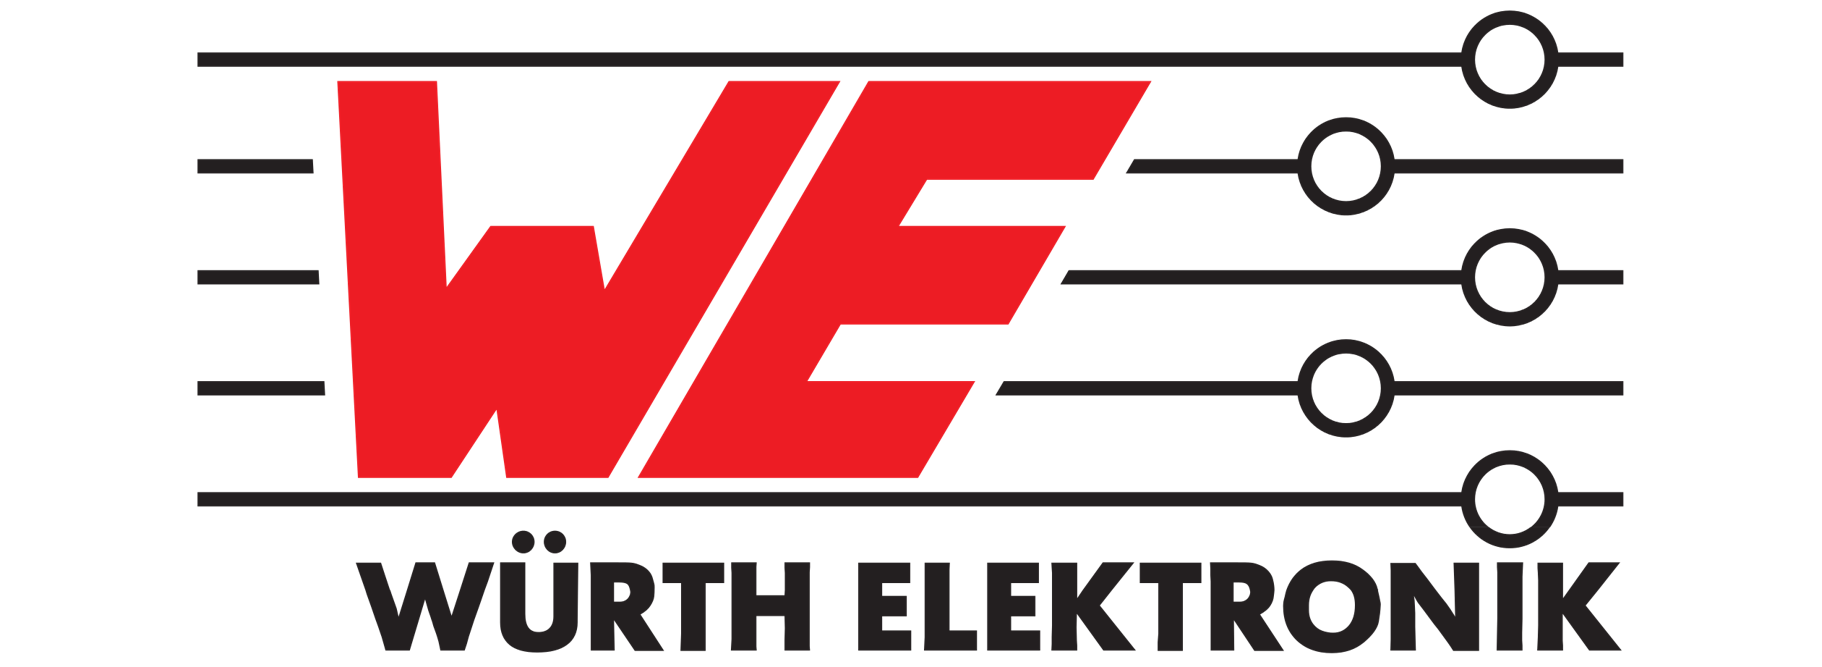 Cost Reduction Opportunity:  Würth Electronik 7447745100